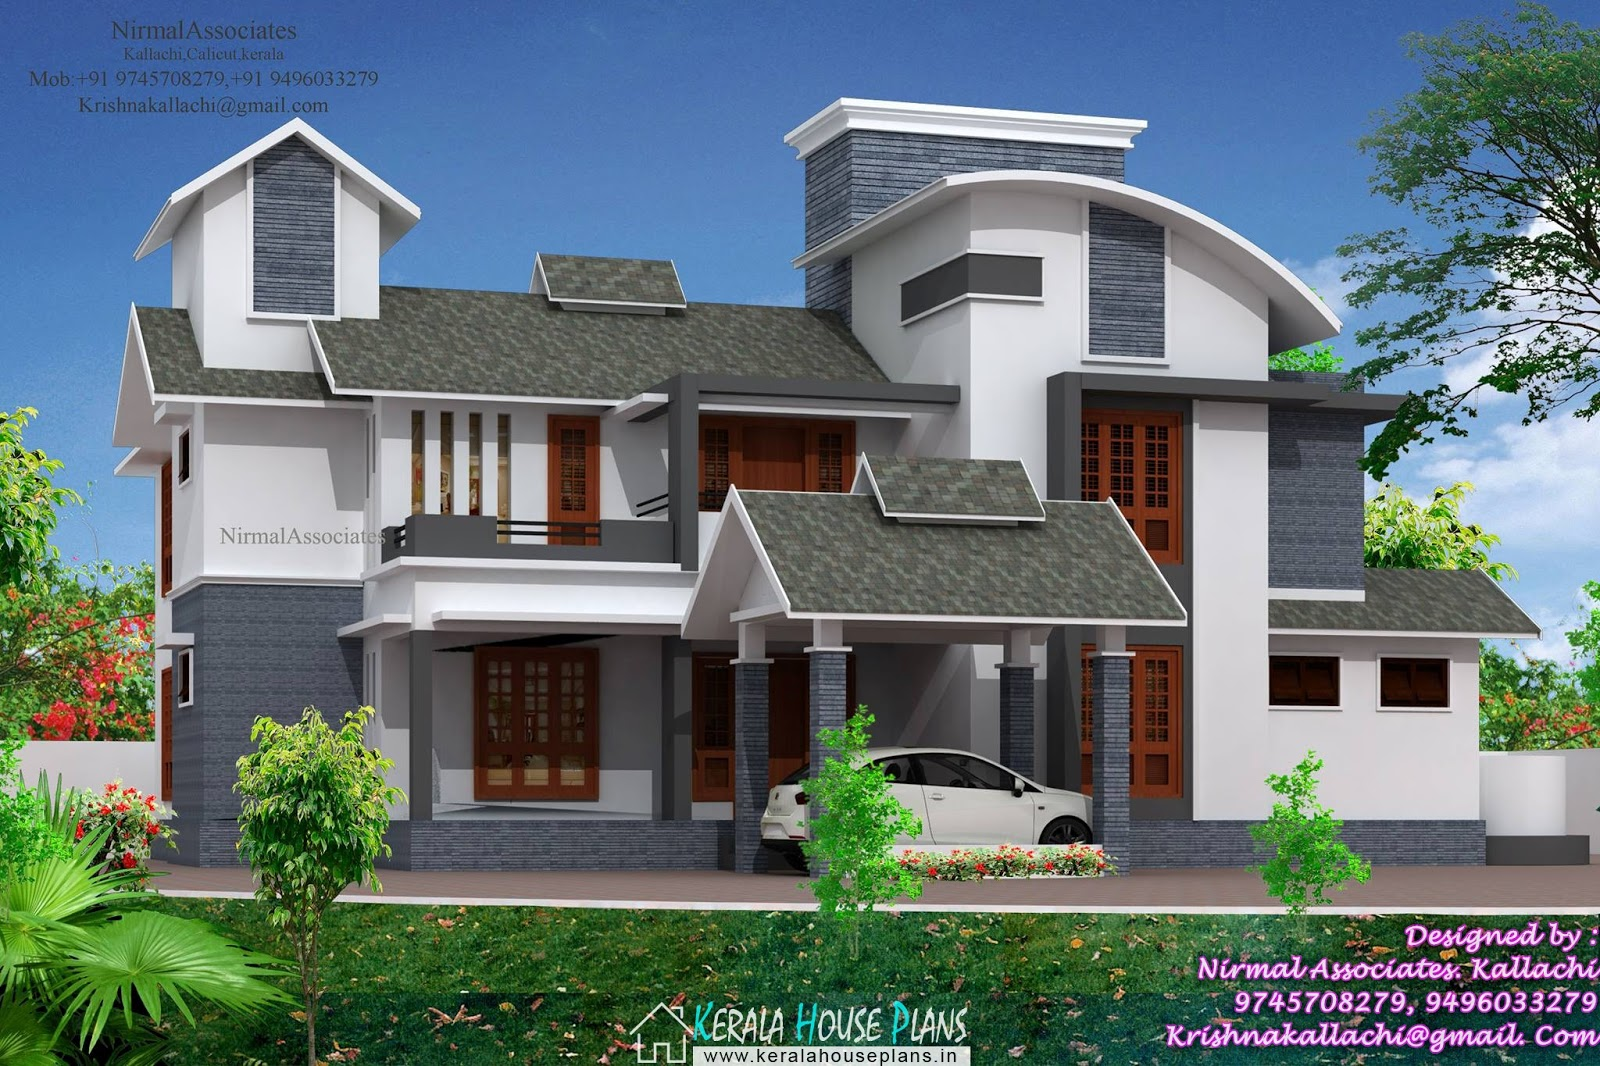 Kerala house plans designs floor plans and elevation for Kerala building elevation